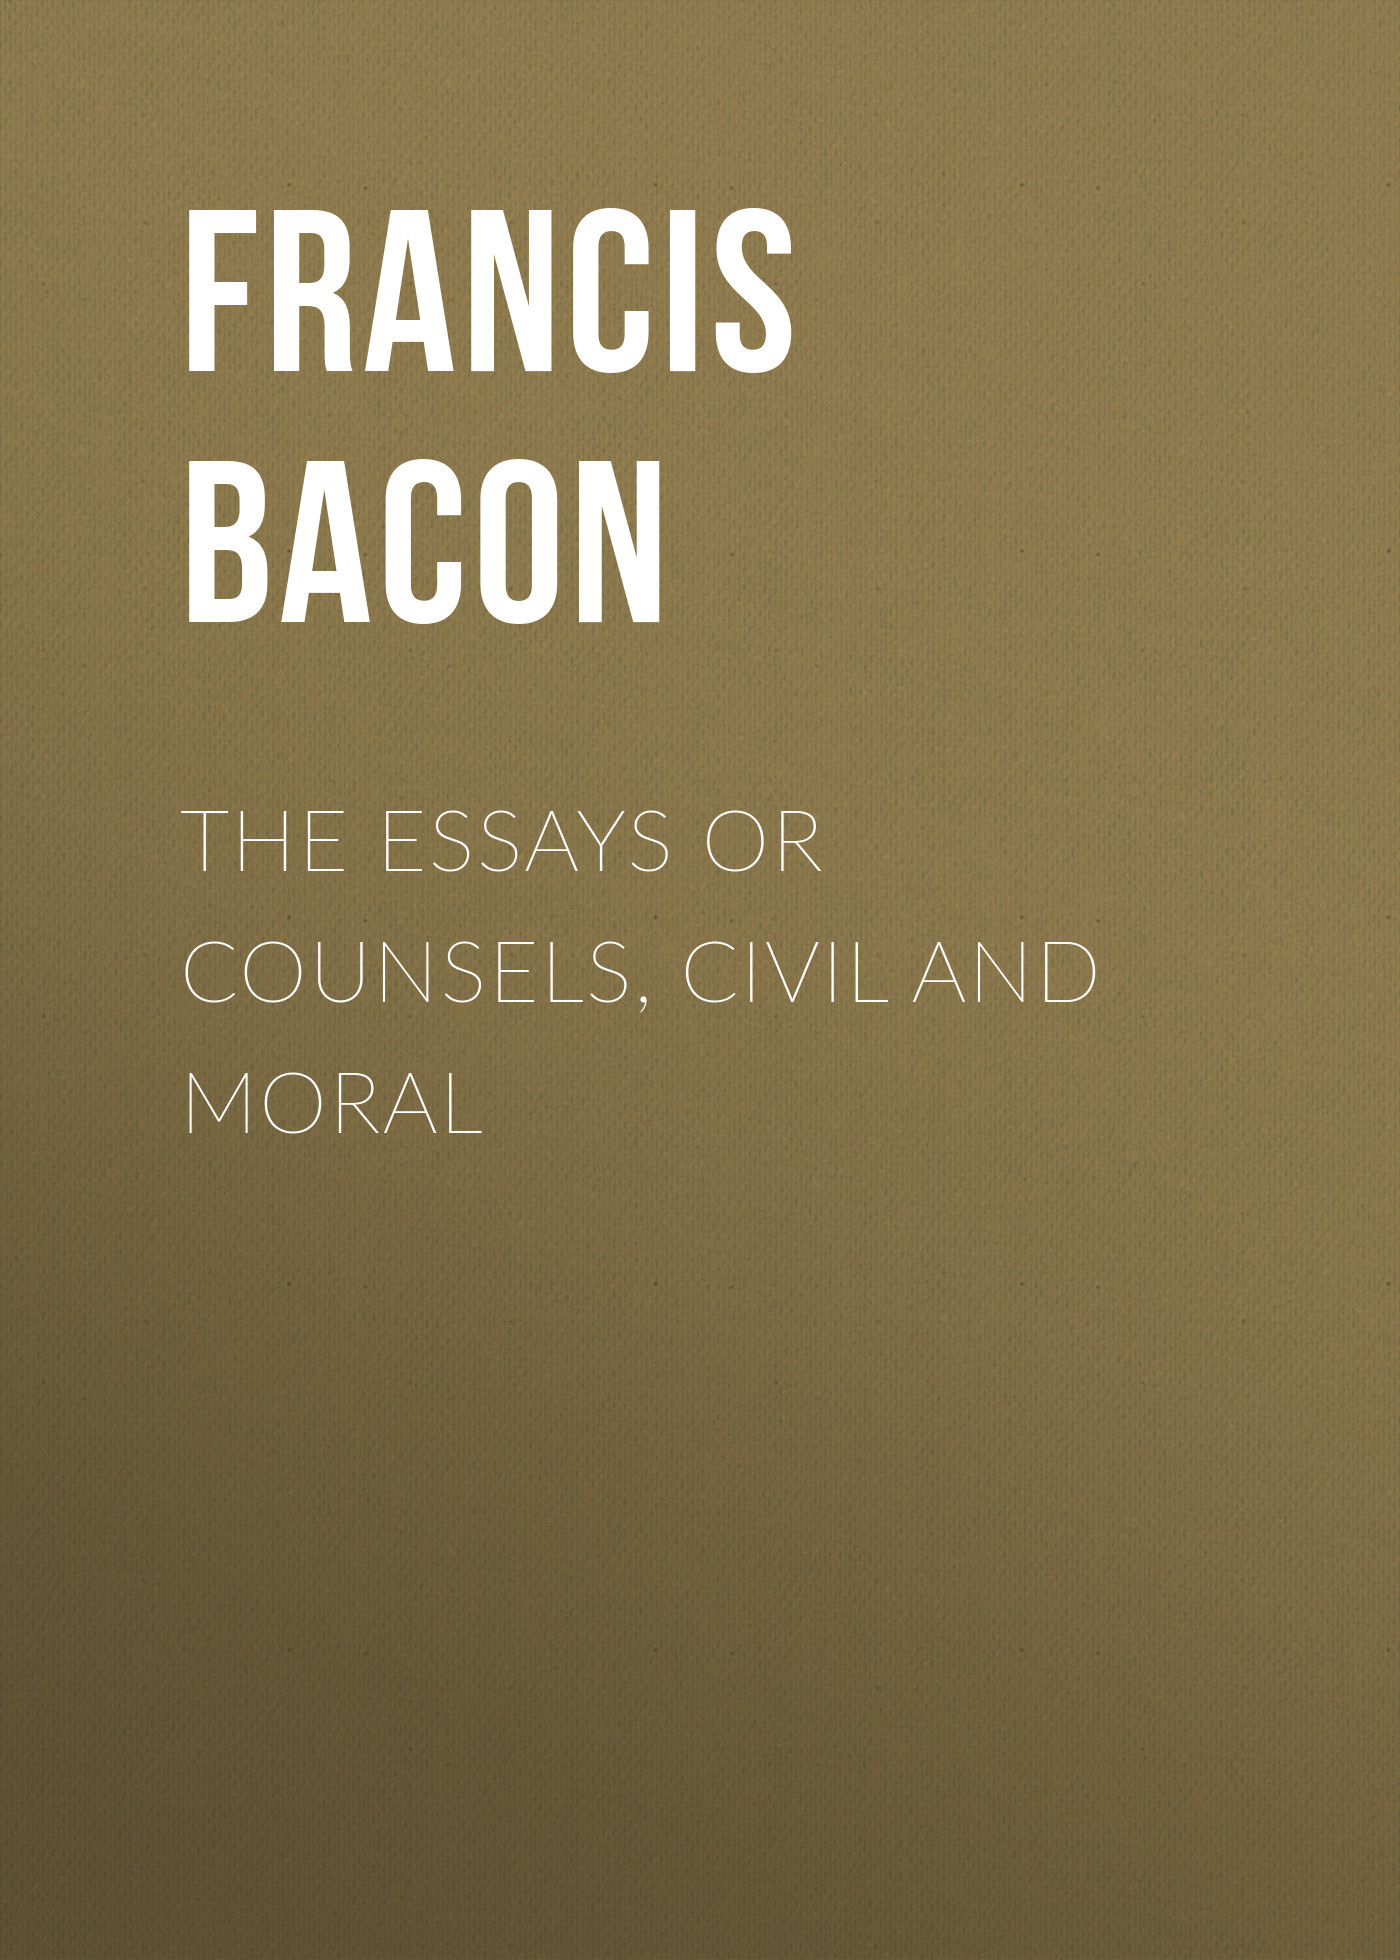 Francis Bacon The Essays or Counsels, Civil and Moral francis bacon